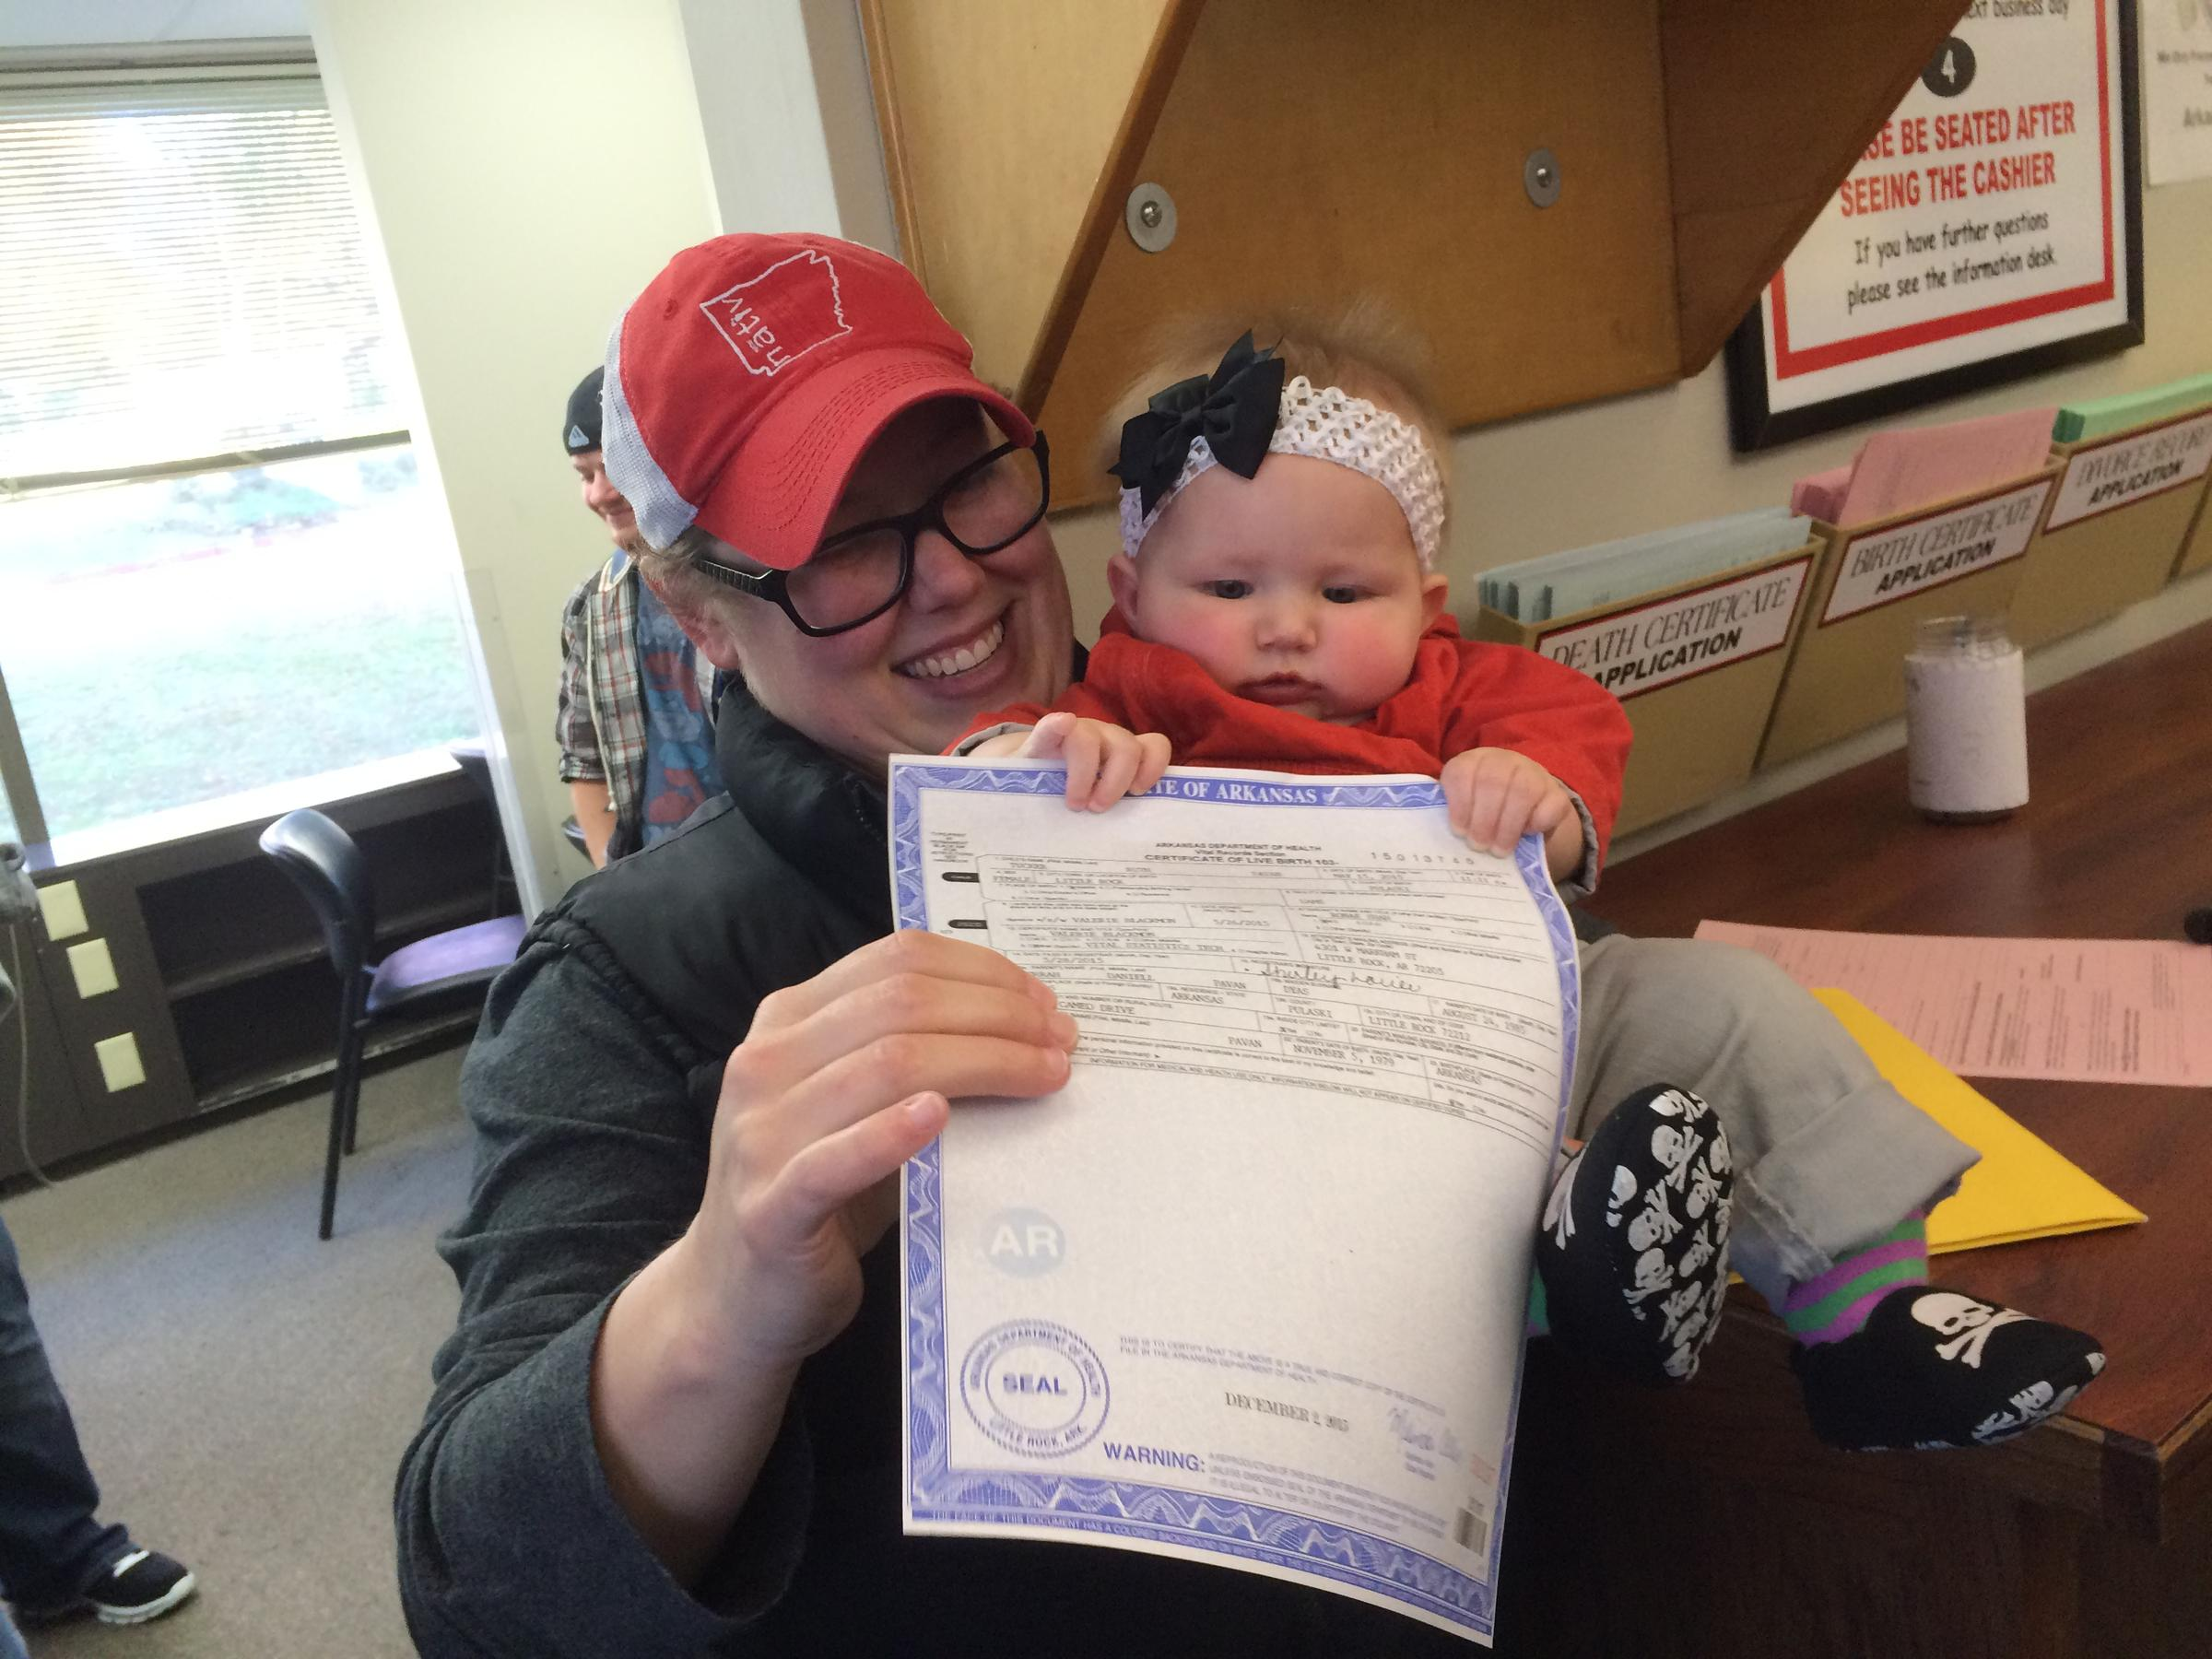 Arkansas Supreme Court Issues Stay On Part Of Birth Certificate